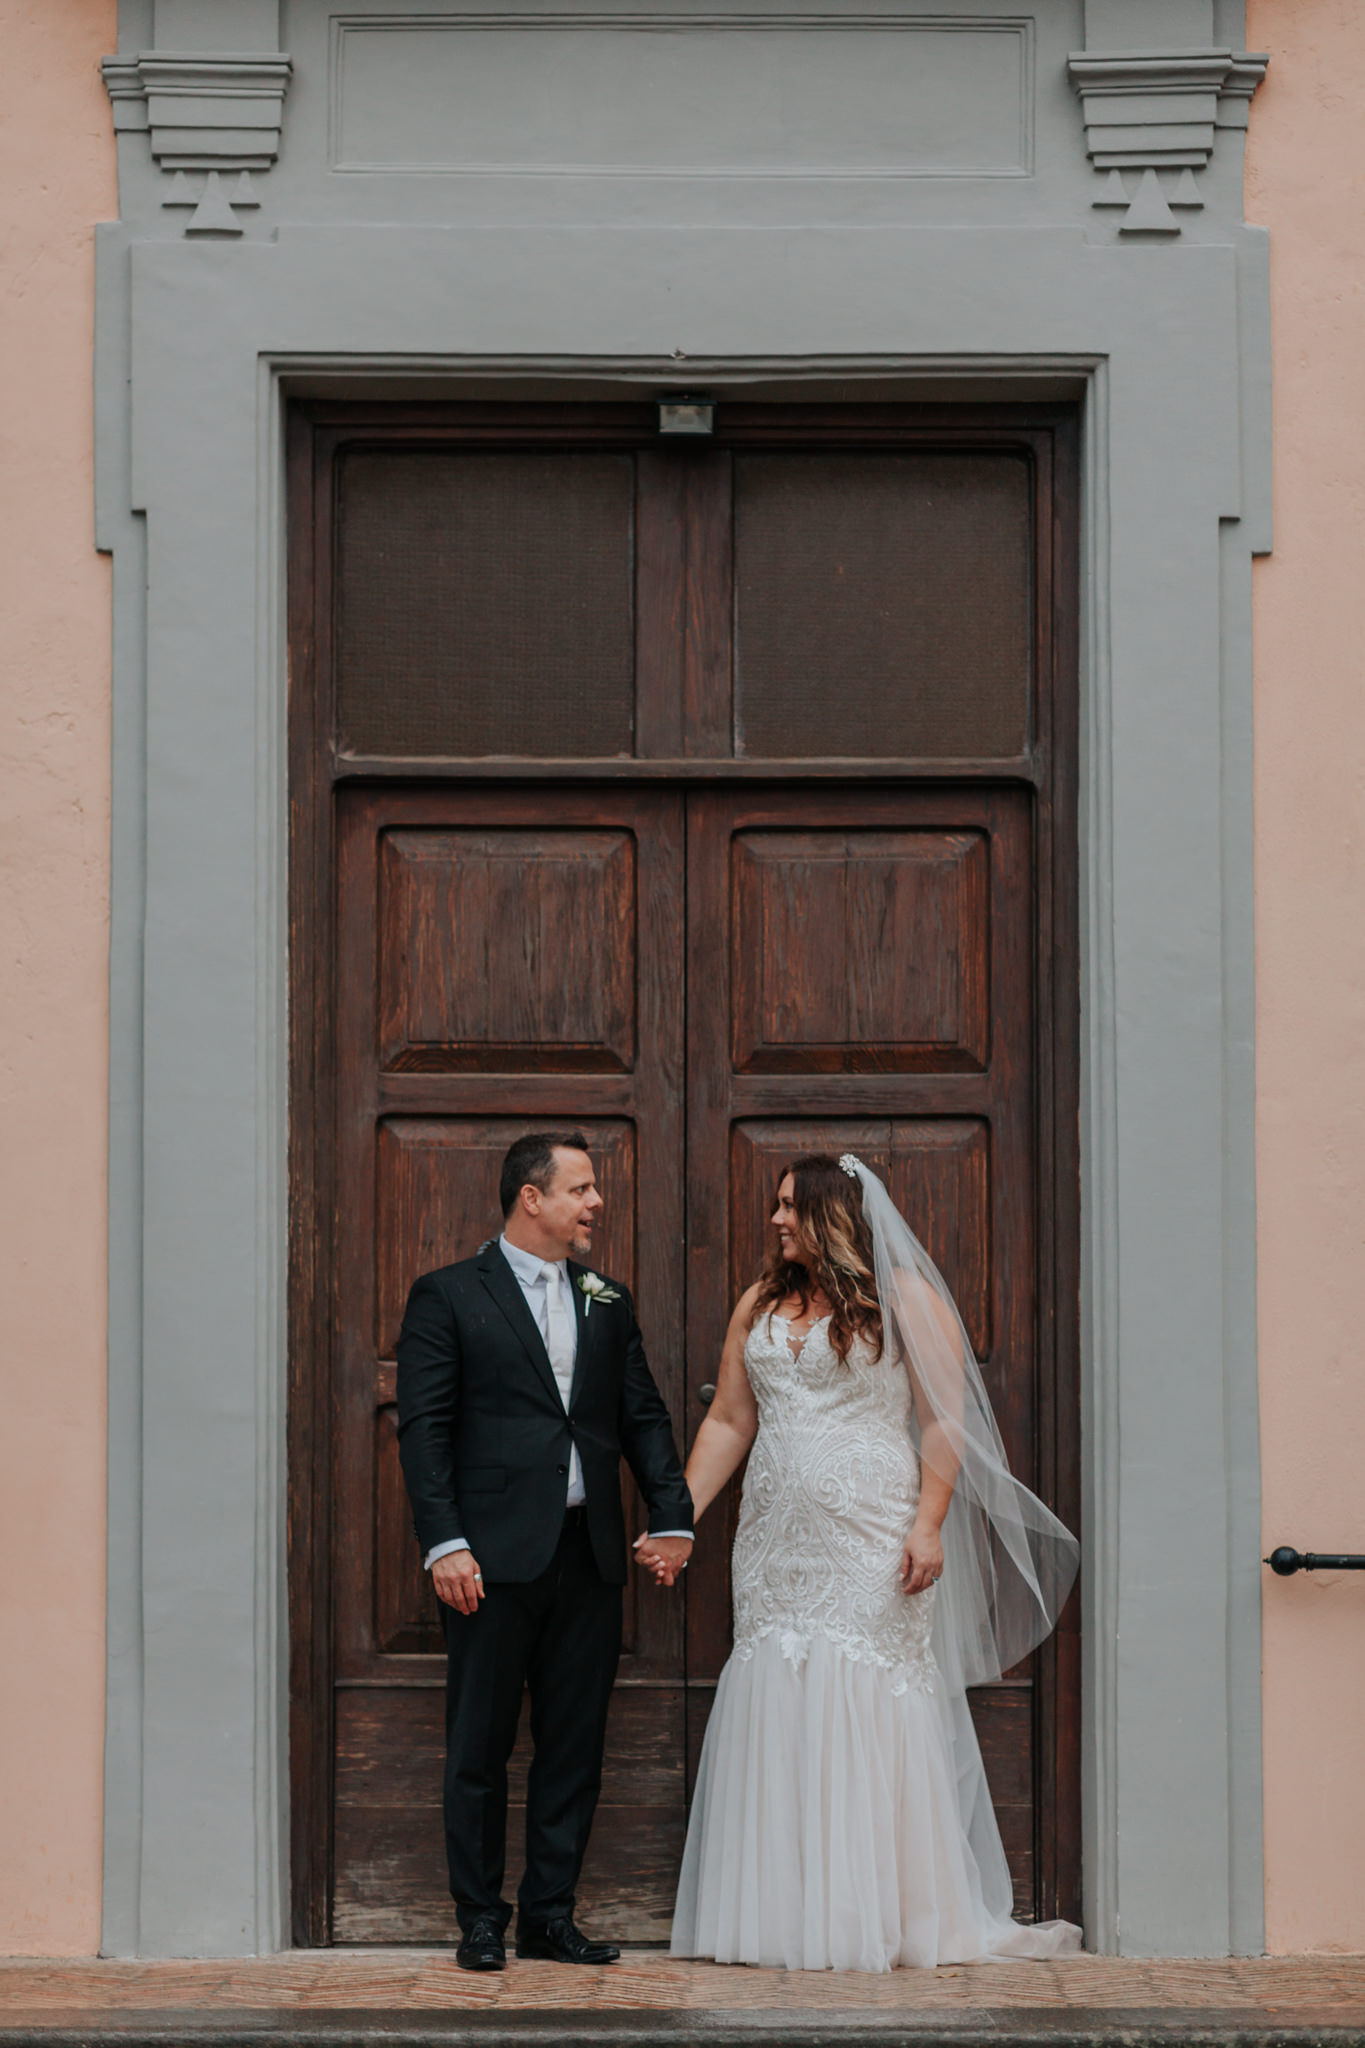 Elkie&Doug_Wedding_Italy_KristieCarrickPhotography_LOW-618.jpg